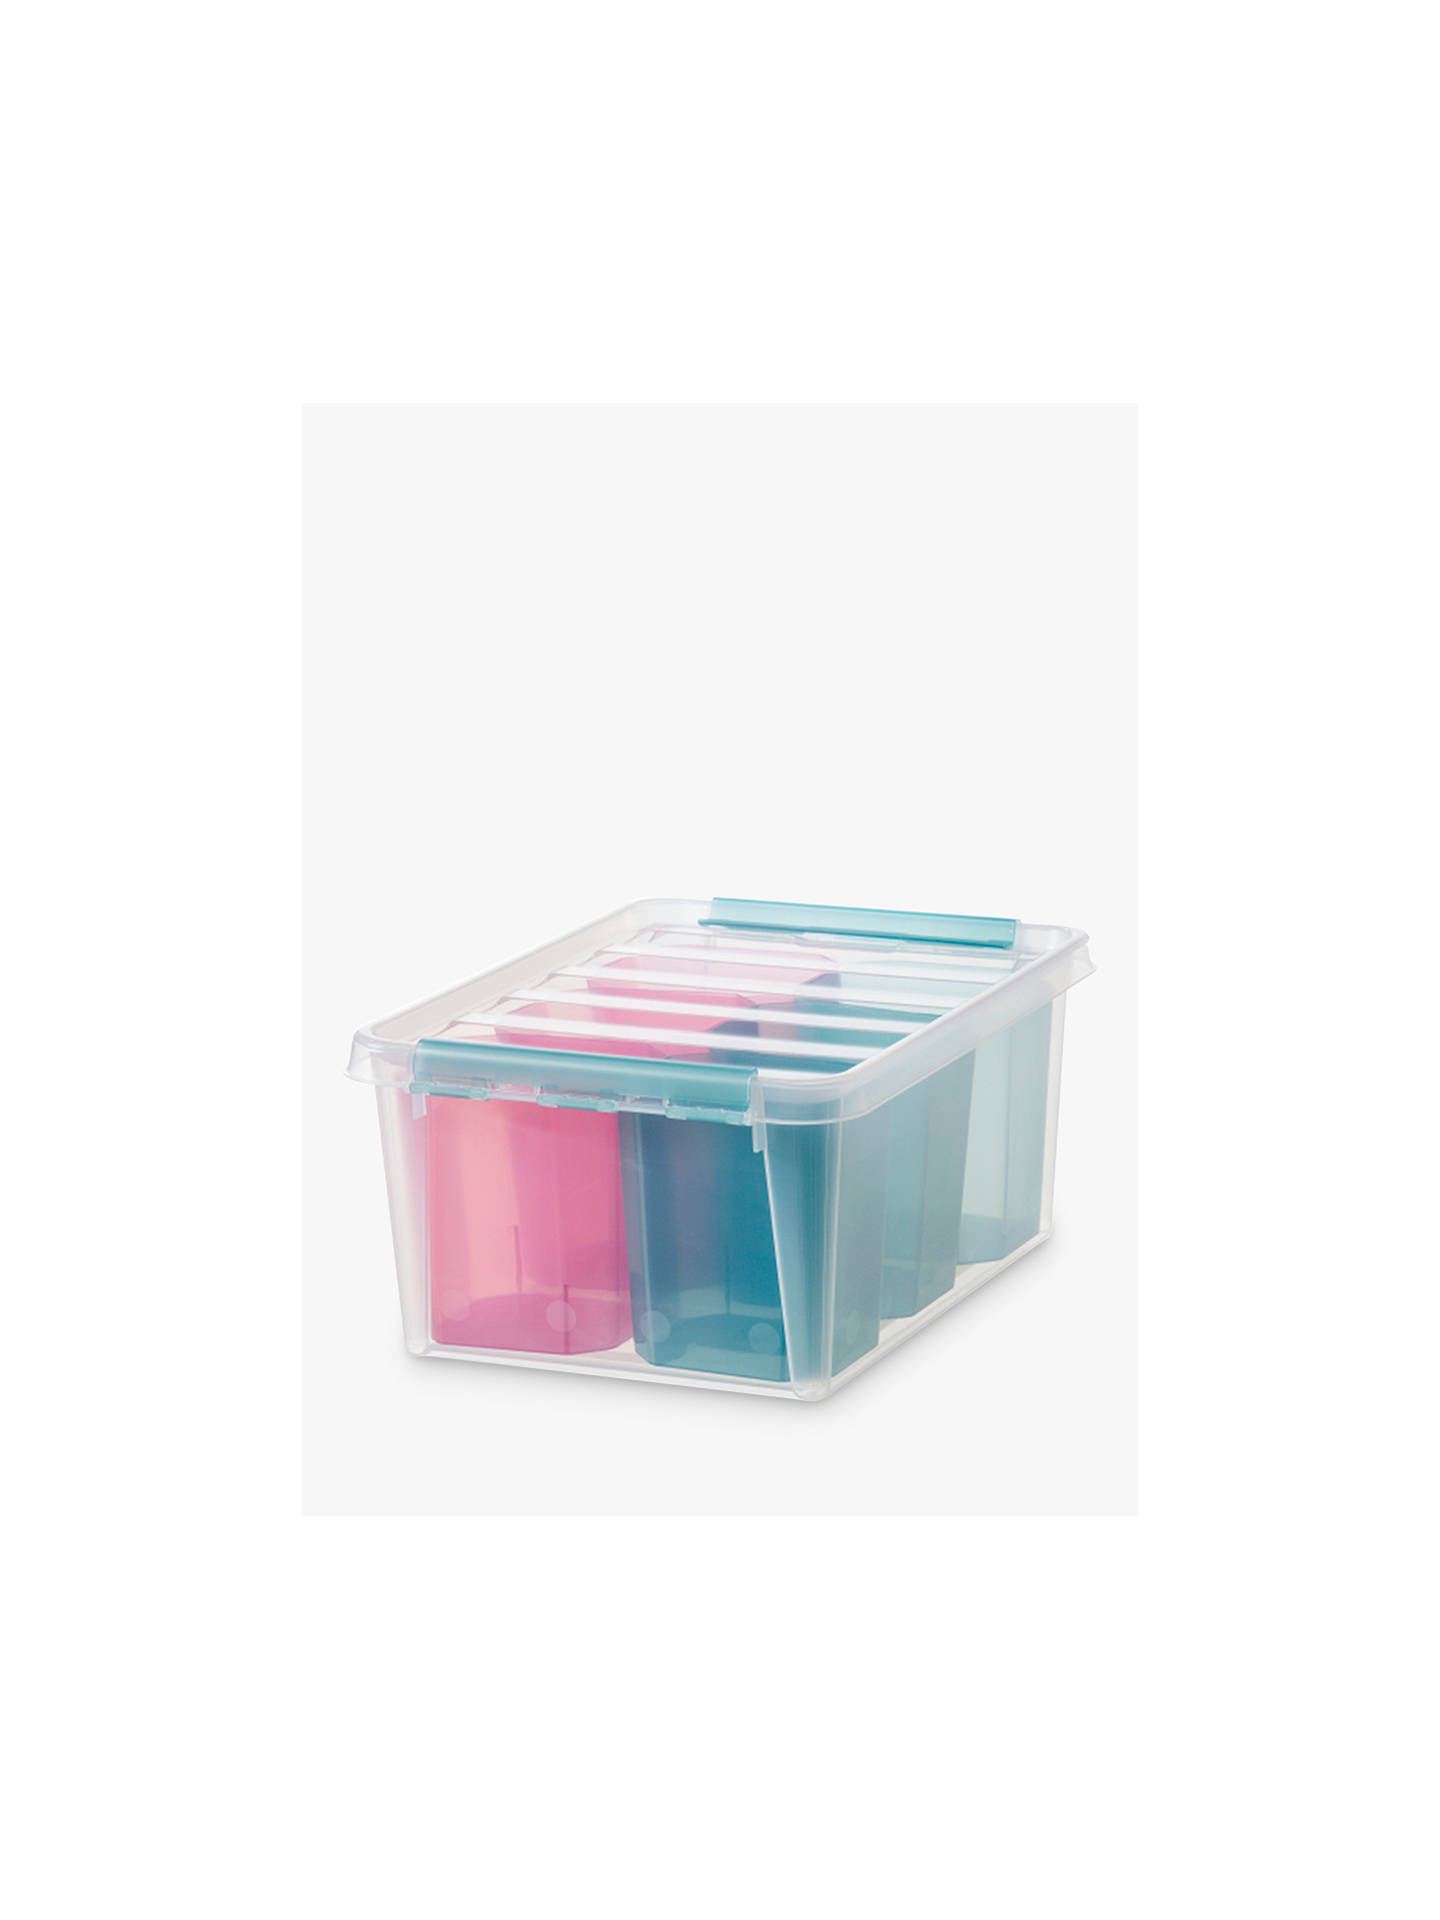 Buy SmartStore by Orthex 15 Plastic Storage Box with 6 Inserts Online at johnlewis.com